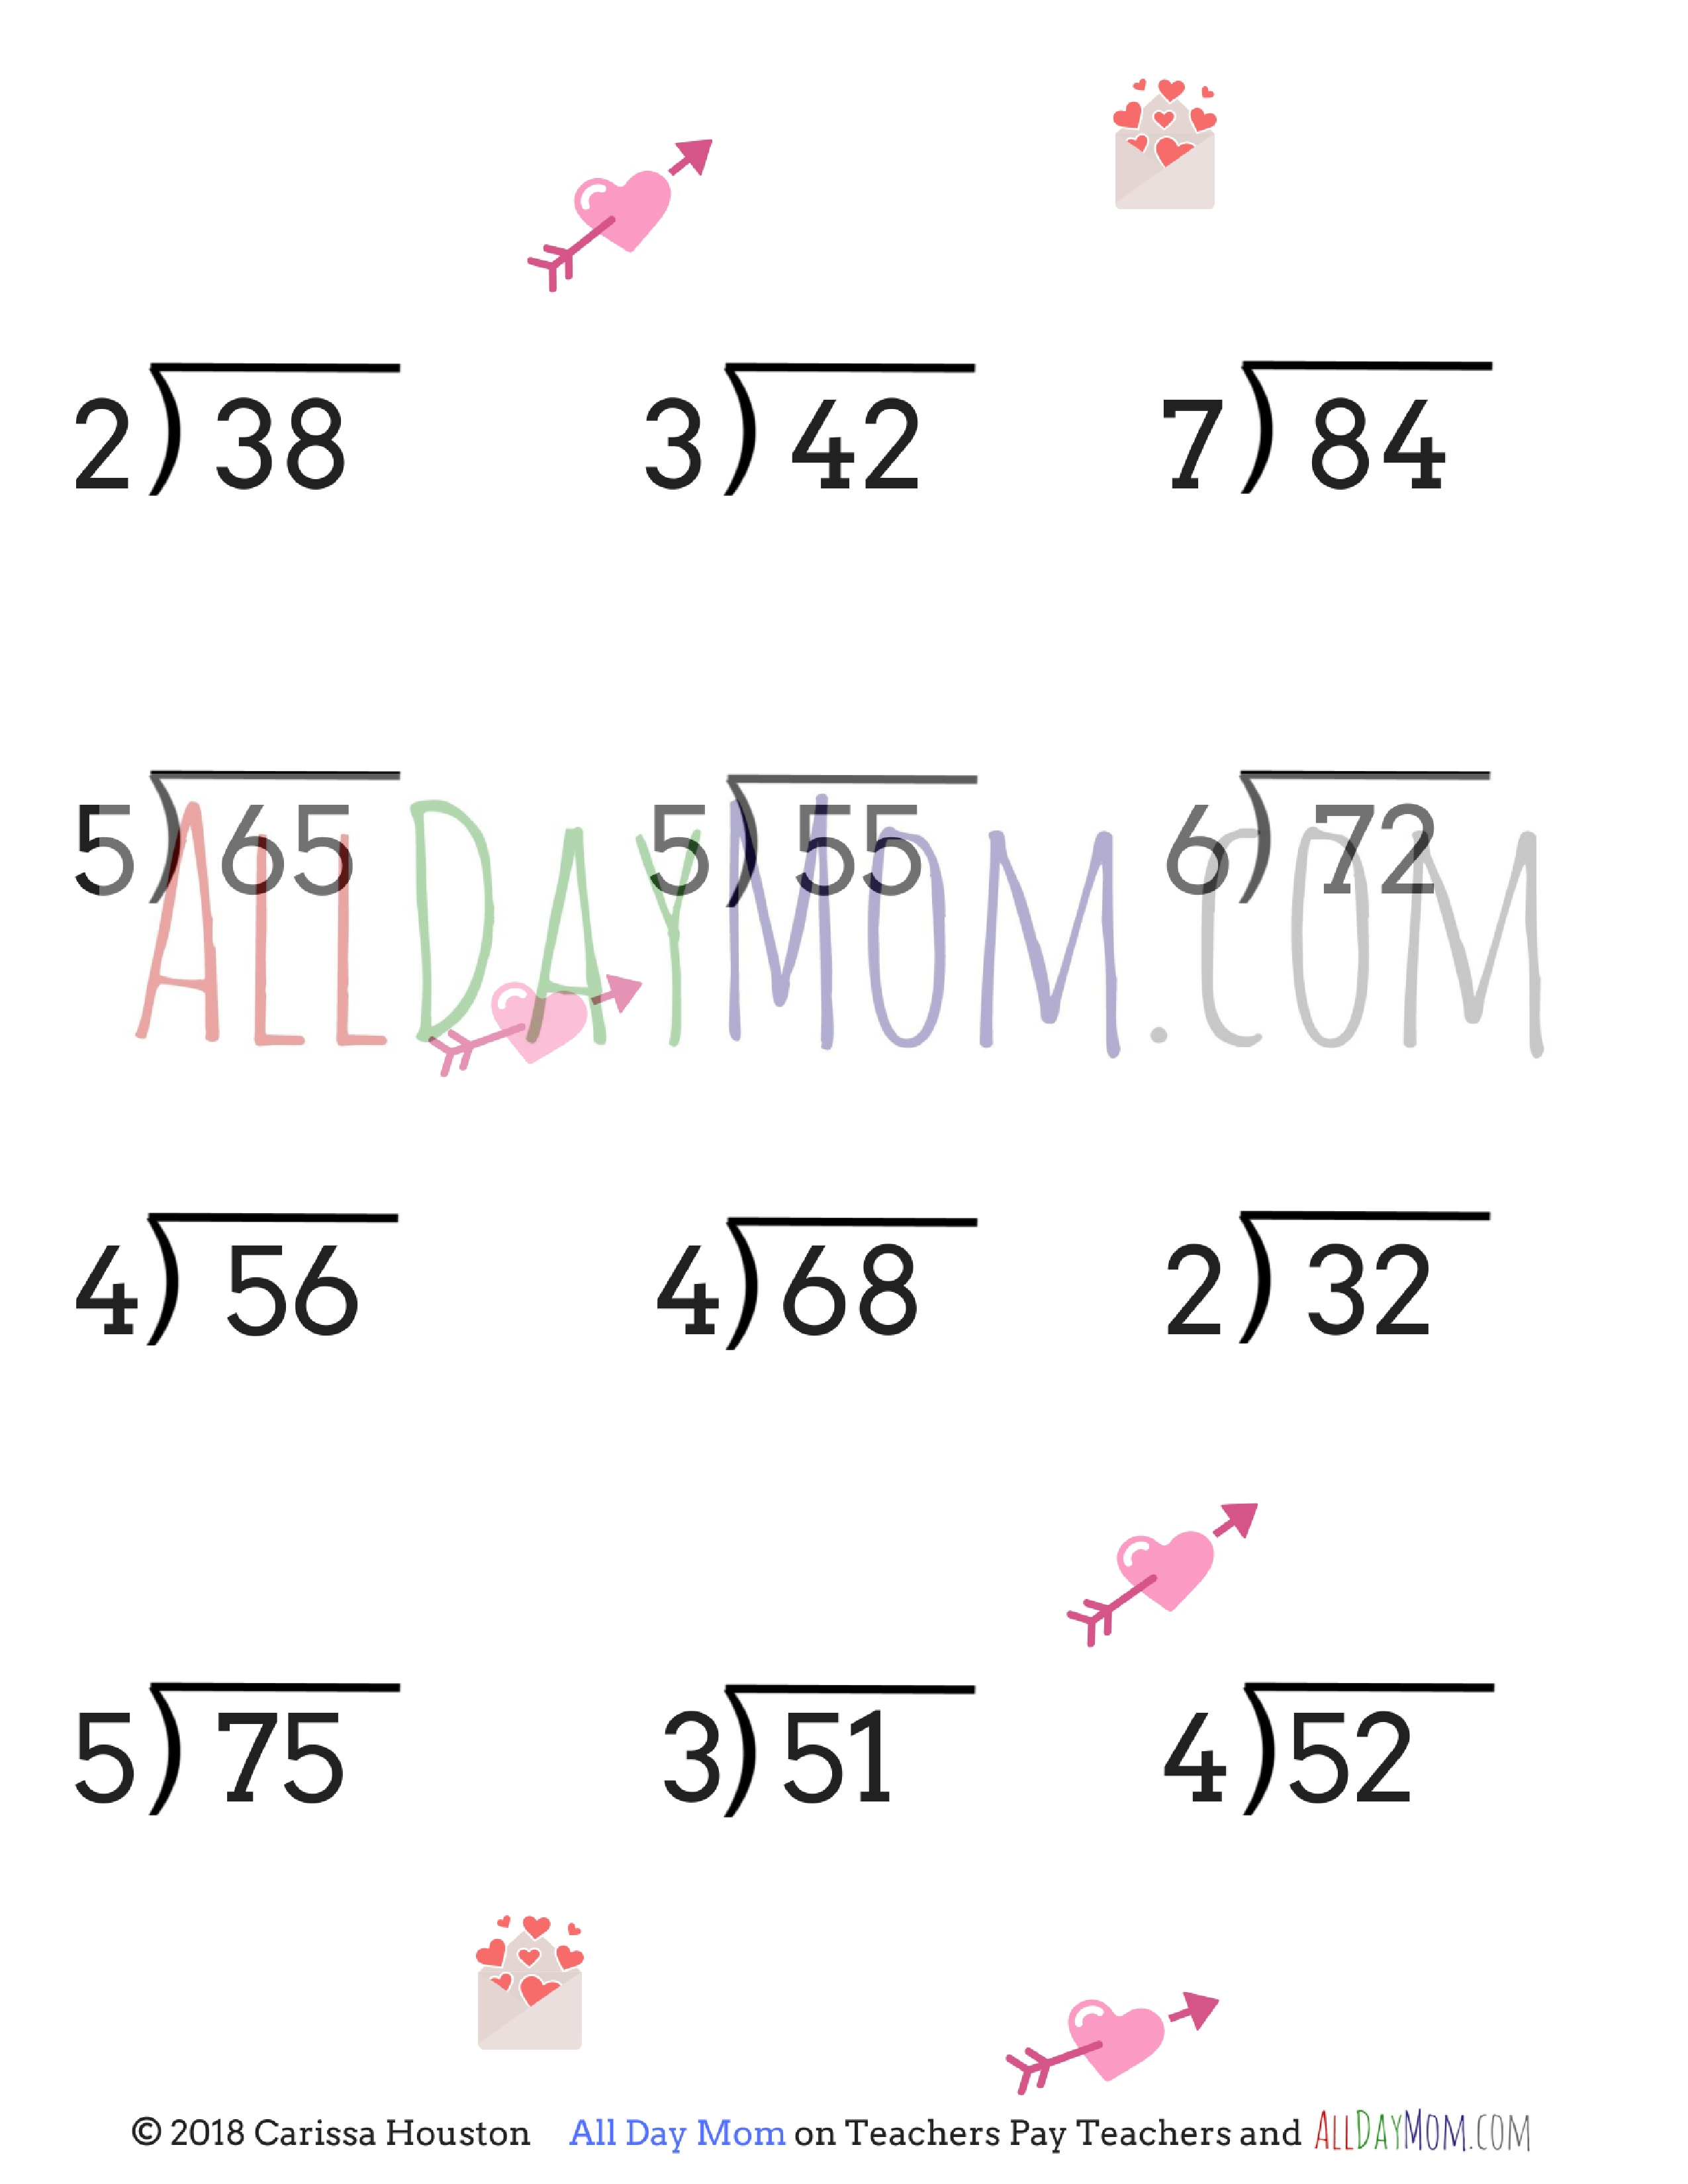 hight resolution of Free printable Valentine's Day math worksheets!